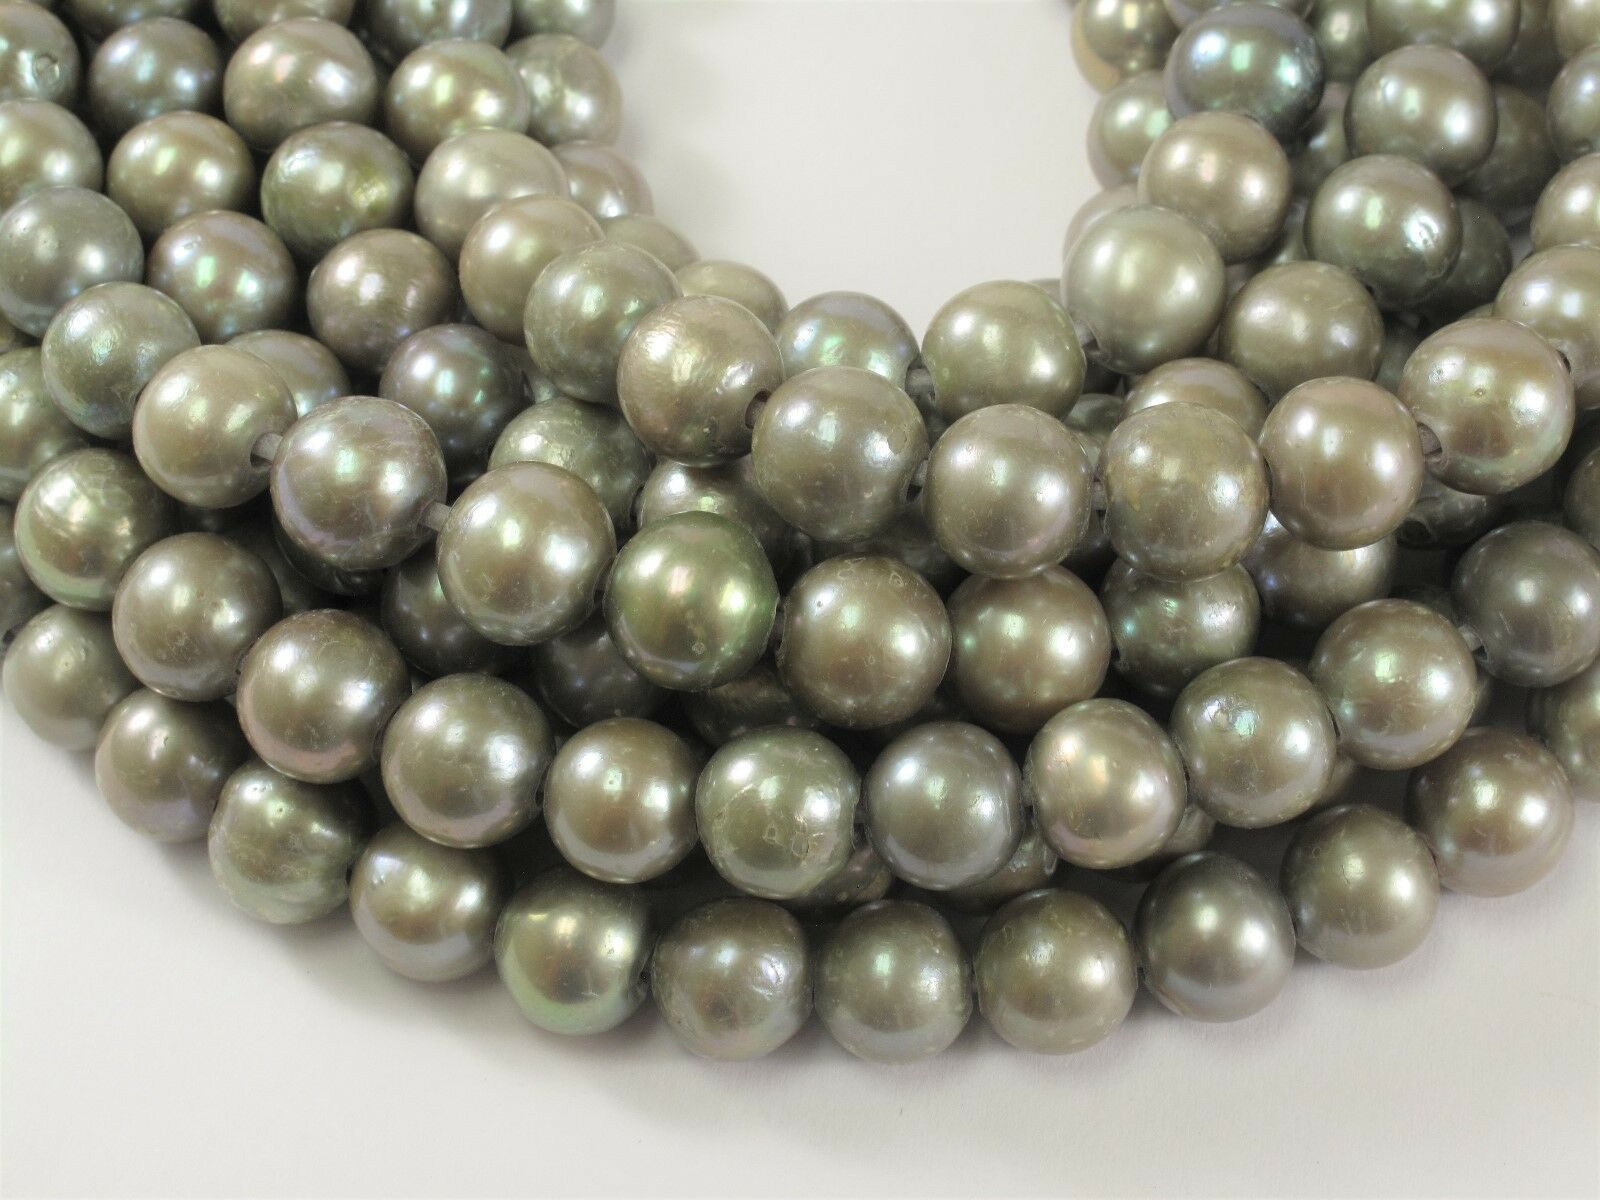 Large Hole Freshwater Pearl Silver//Gray Color Potato Shape Size 11-12mm #50